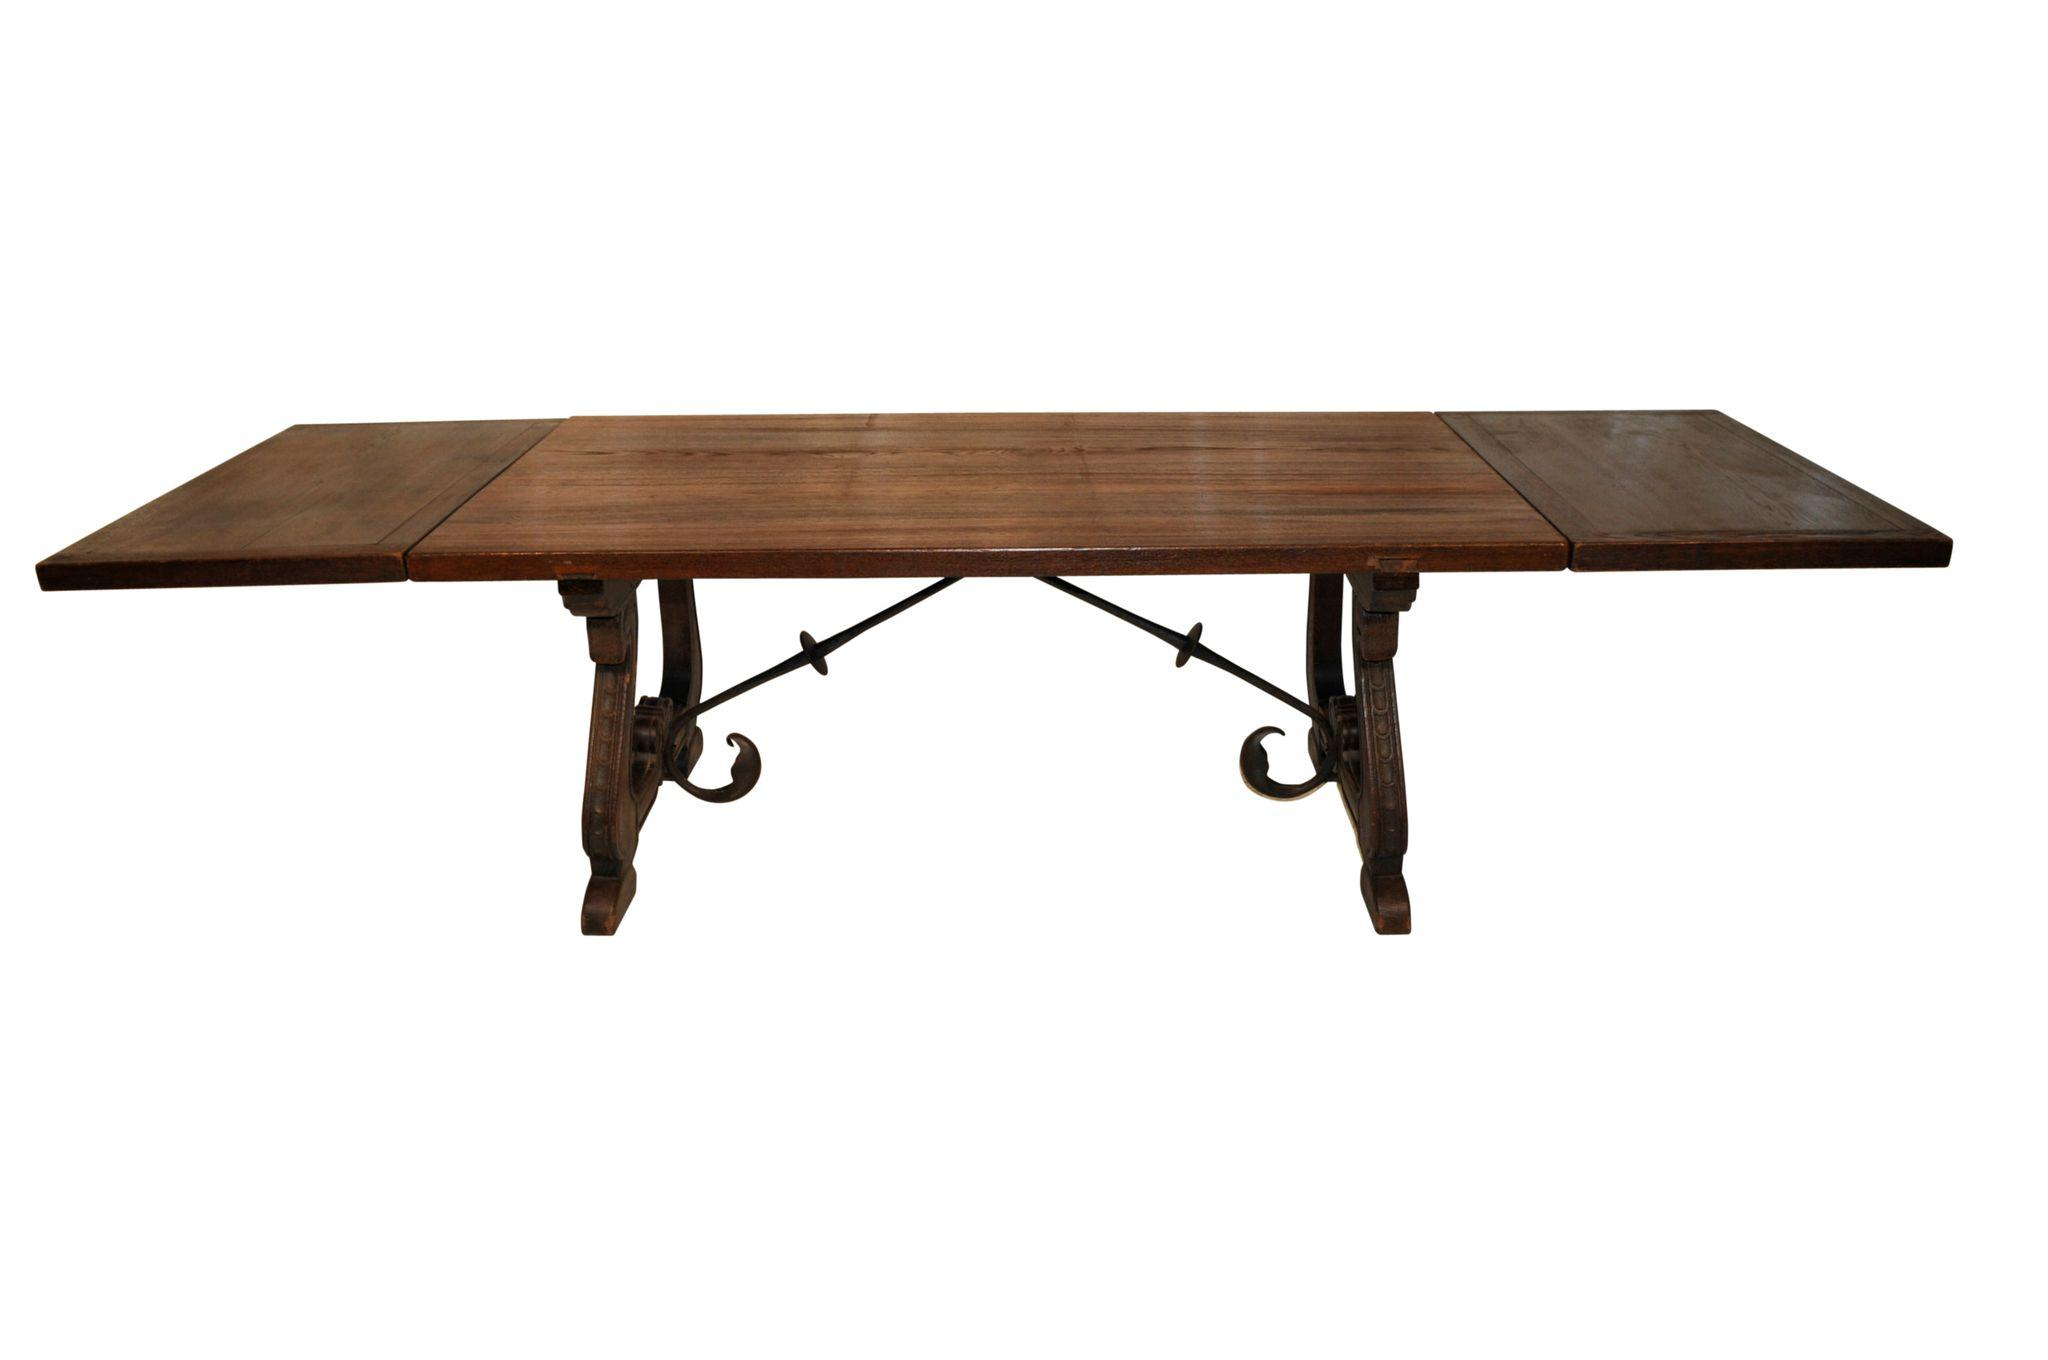 Spanish Monastery Table Oak 1920 s Nice Rustic Table from